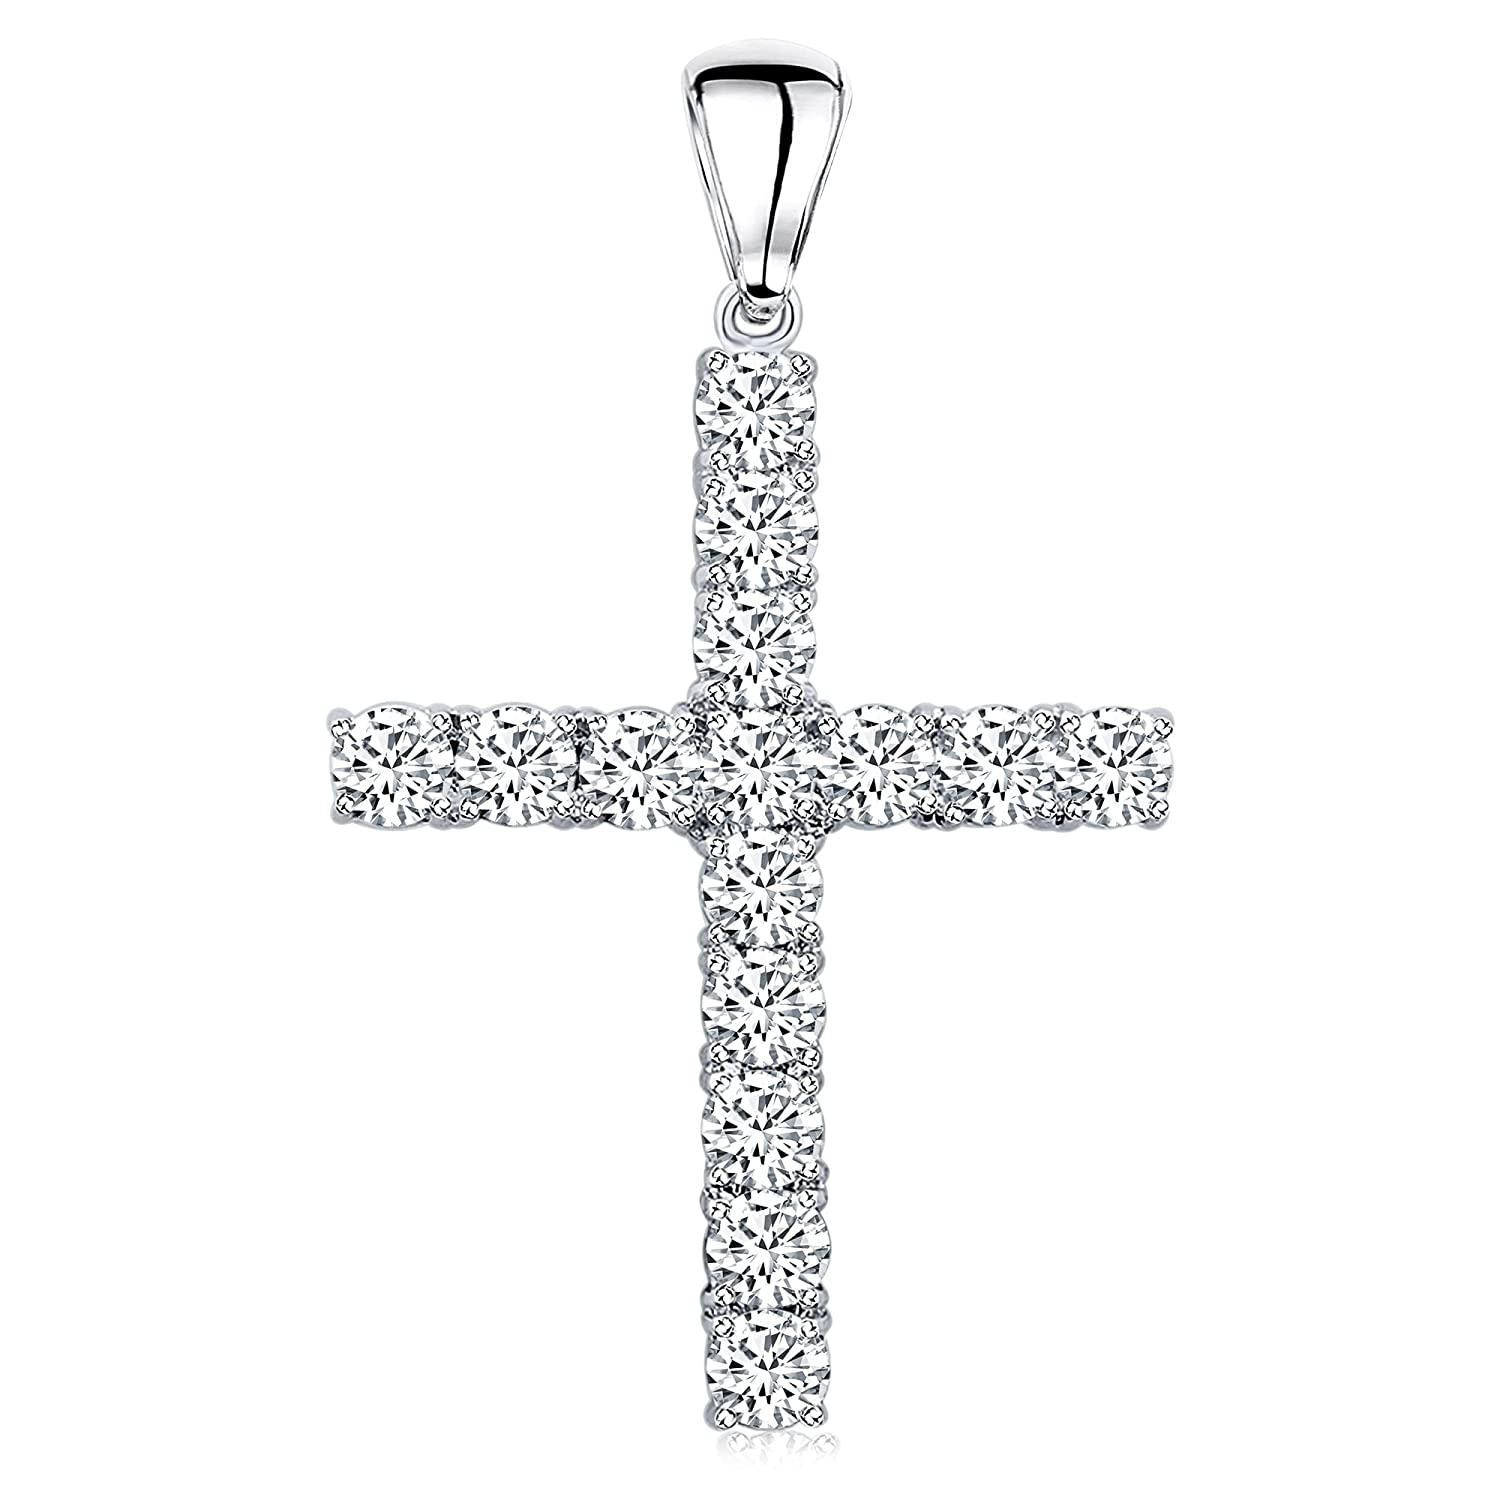 6a9b1e01b8673 Men's Sterling Silver .925 Original Design Iced Out Large Cross ...